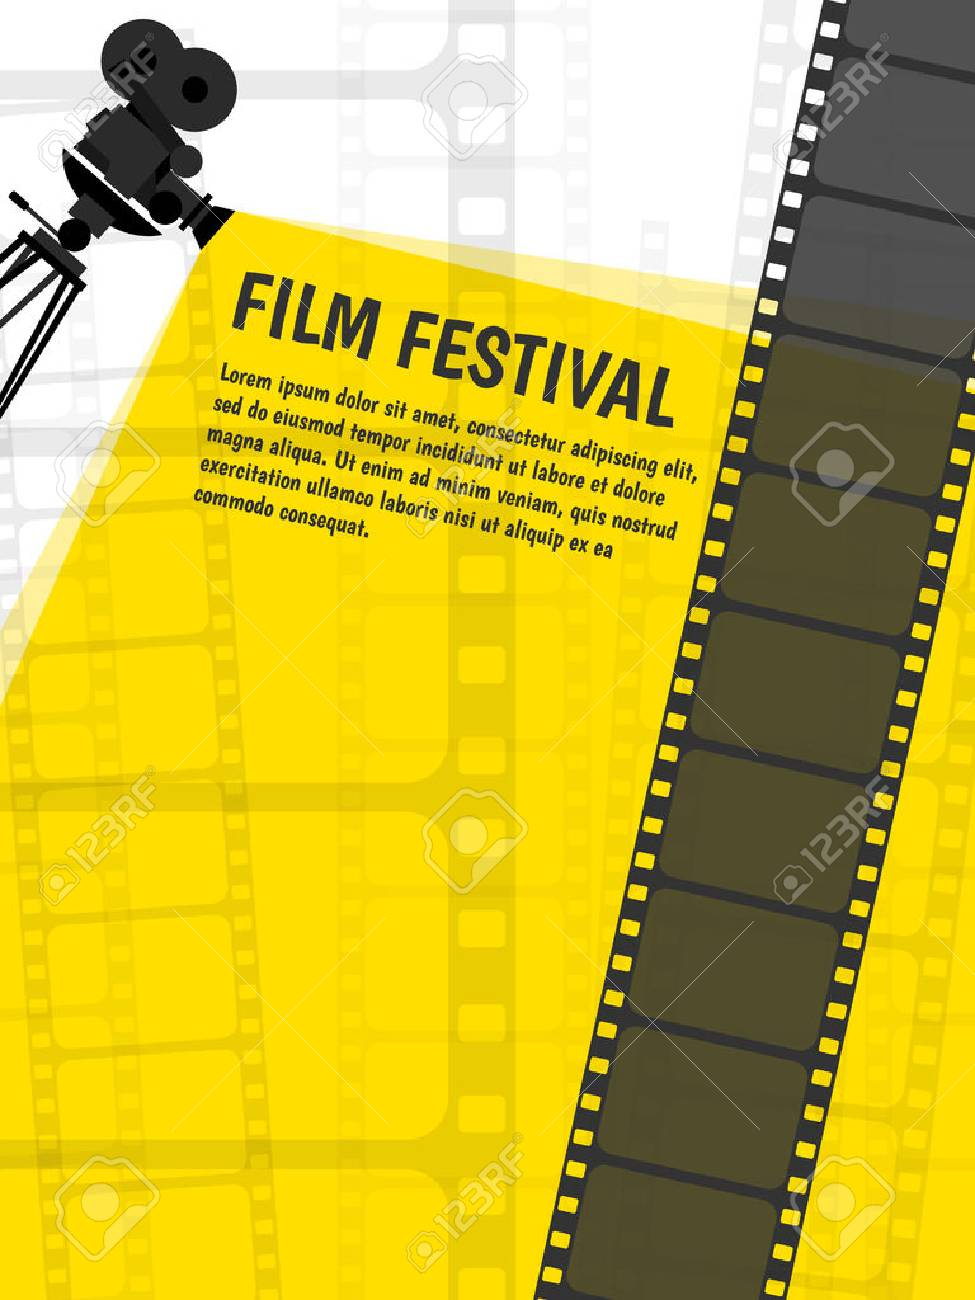 Cinema Festival Poster Or Flyer Template For Your Design Vector Stock